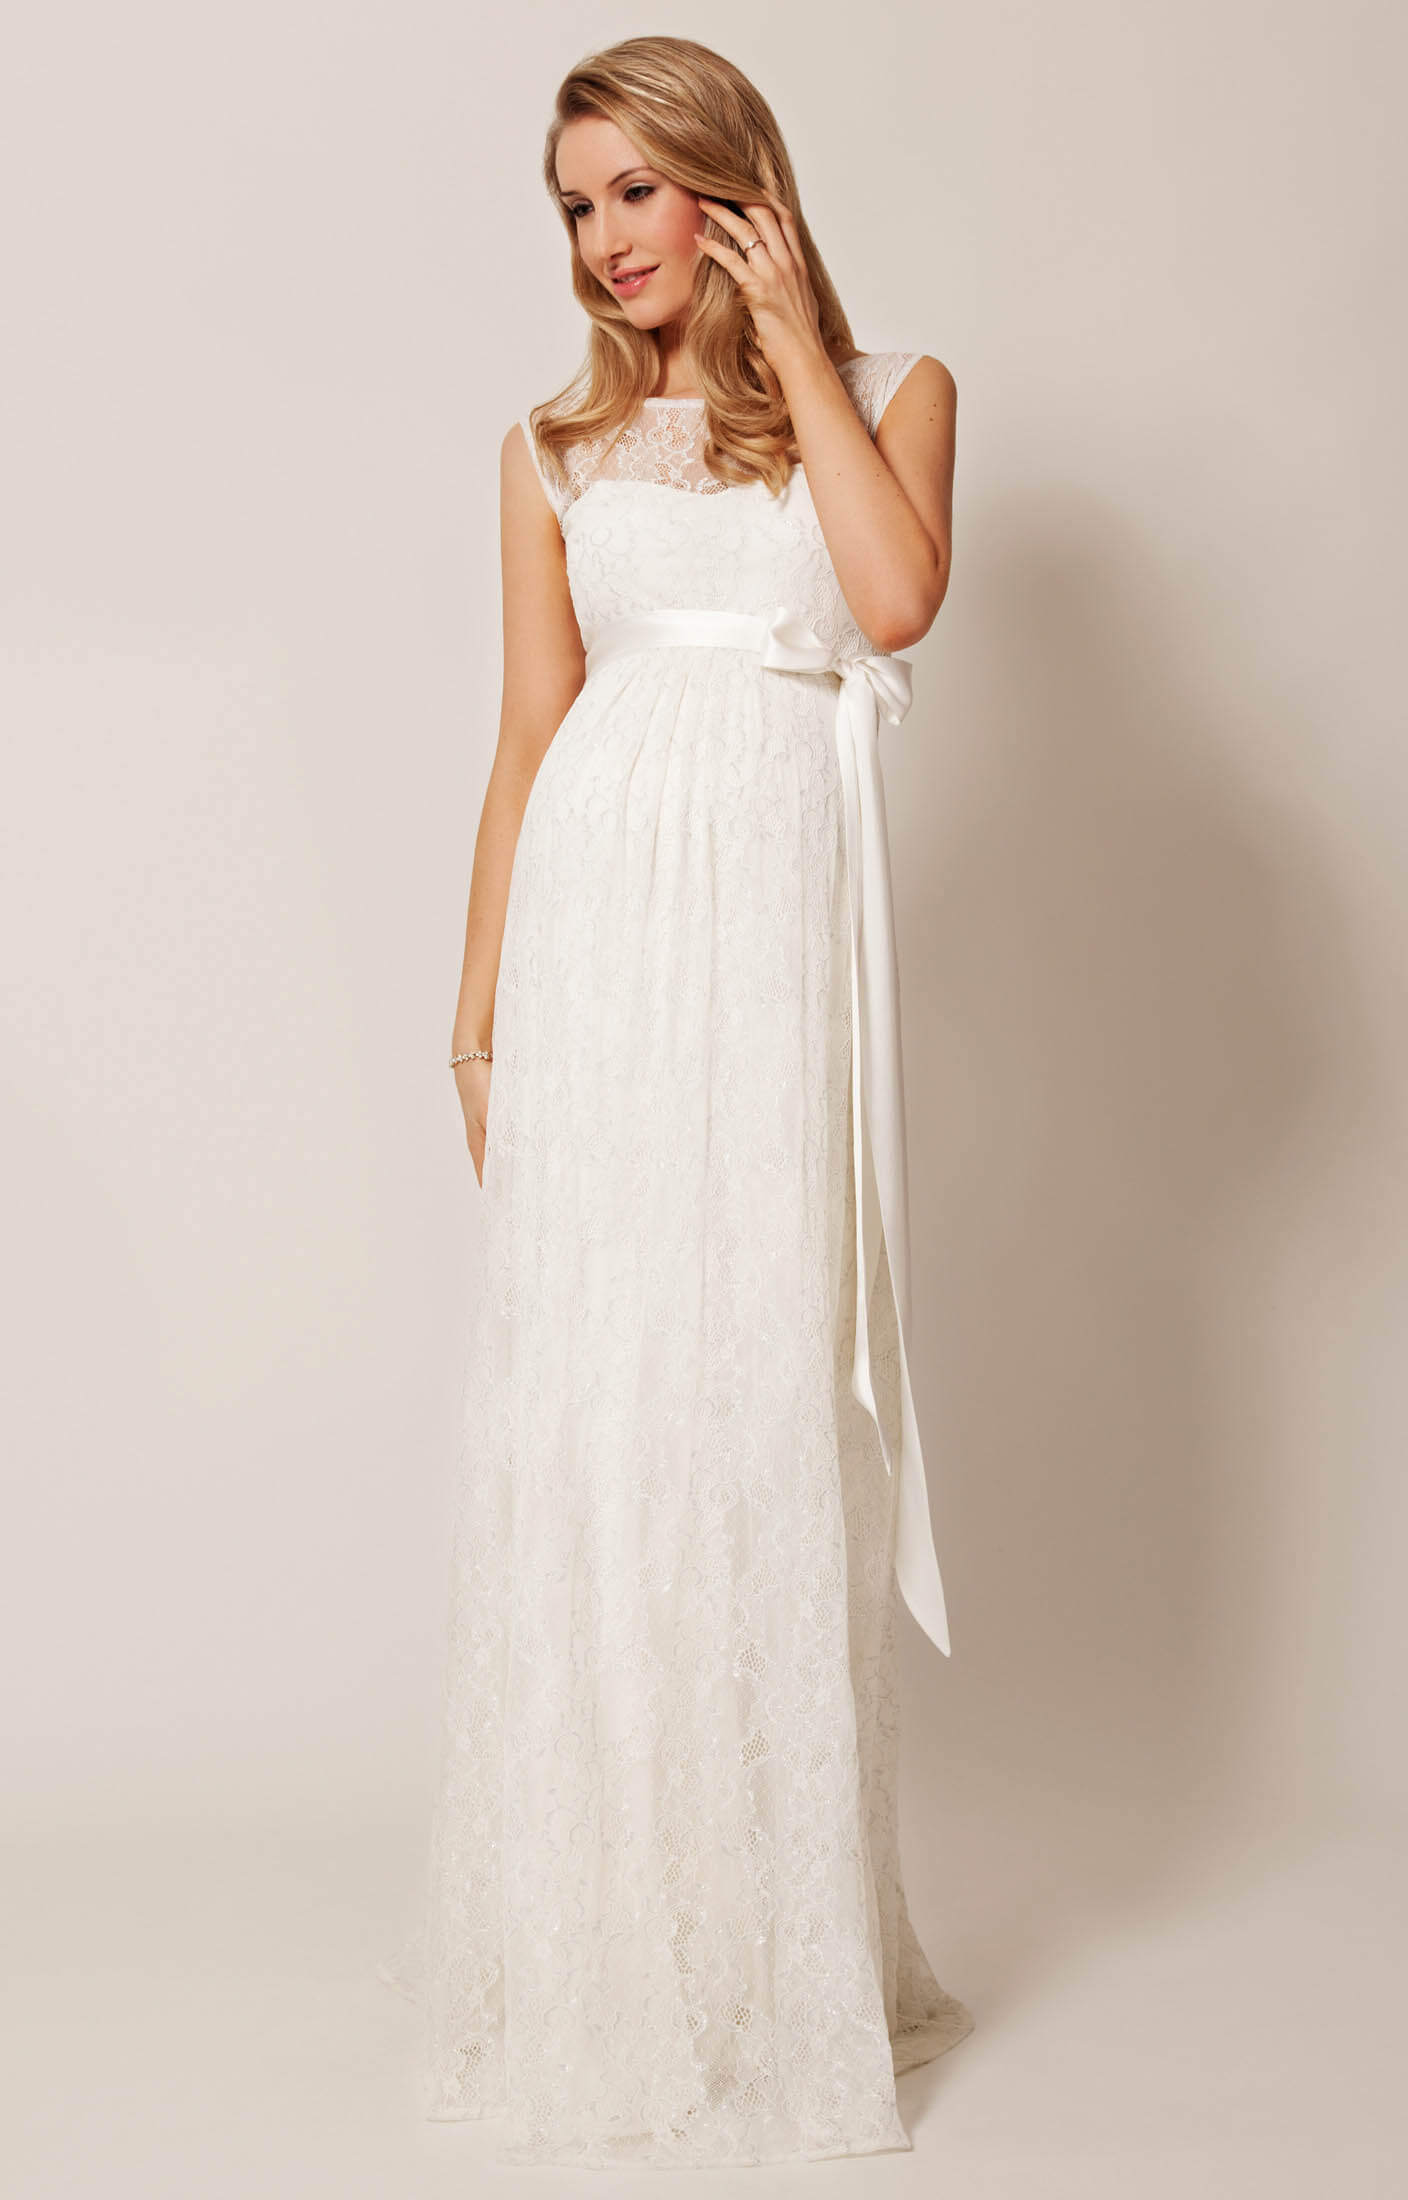 Ellie Maternity Wedding Gown Long Ivory - Maternity Wedding Dresses ...